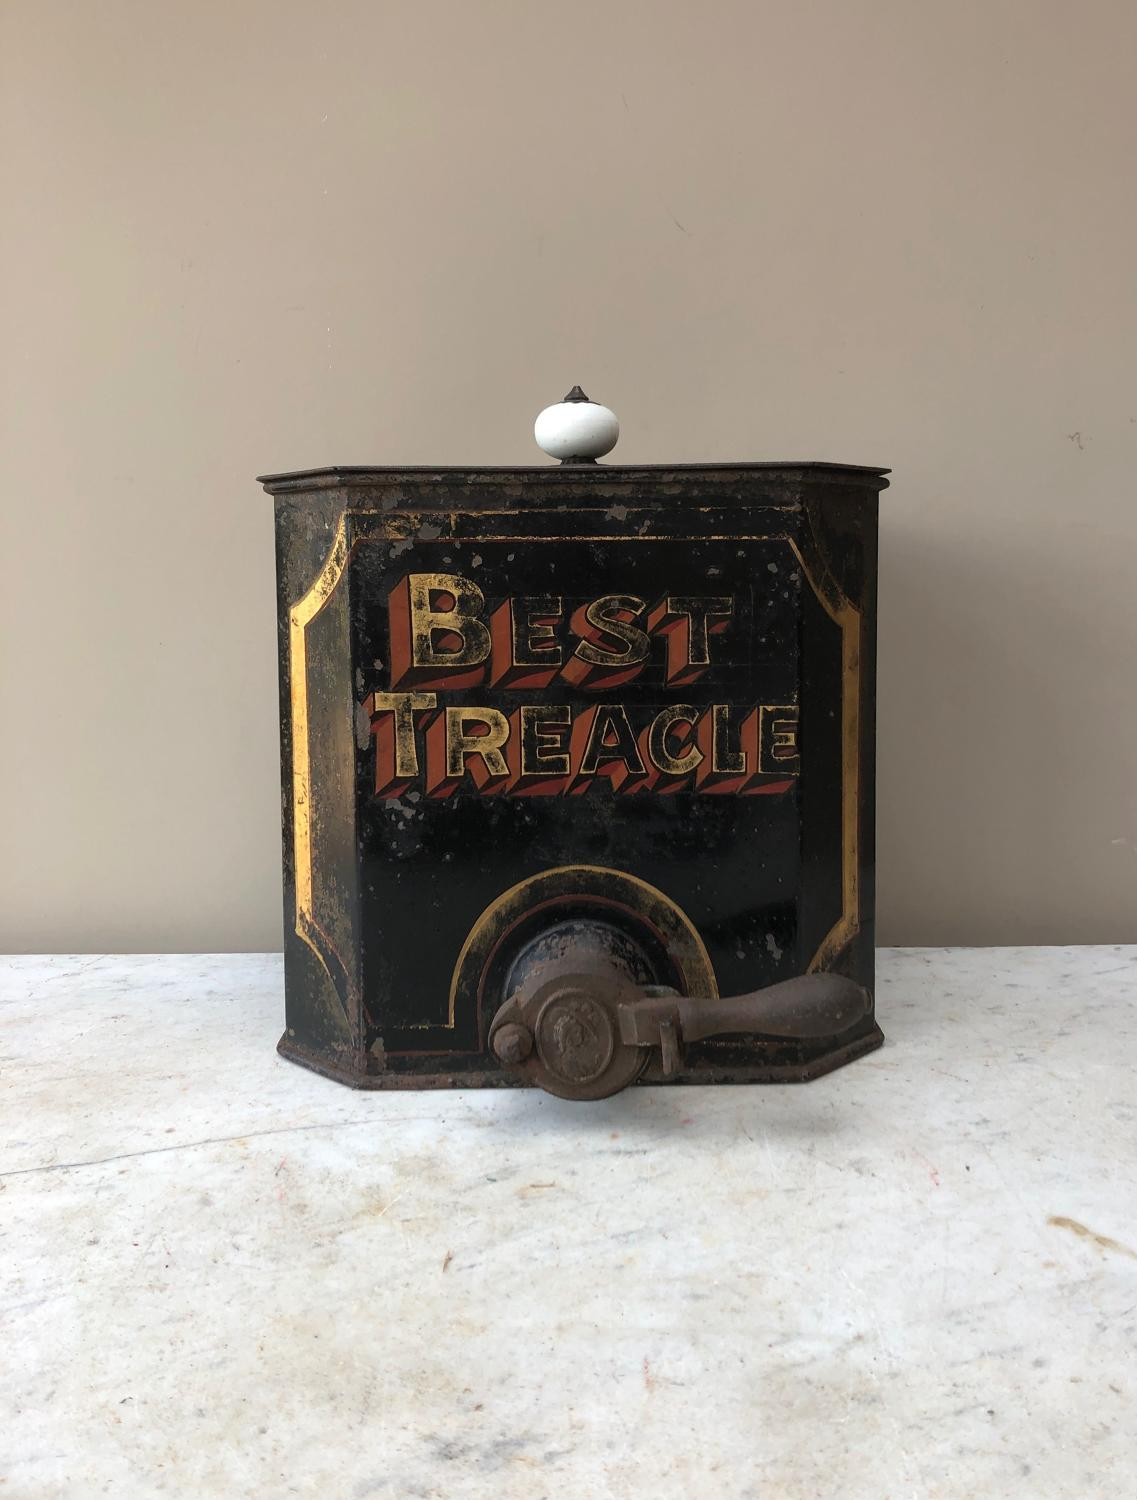 Victorian Shops Toleware Treacle Dispenser - Best Treacle